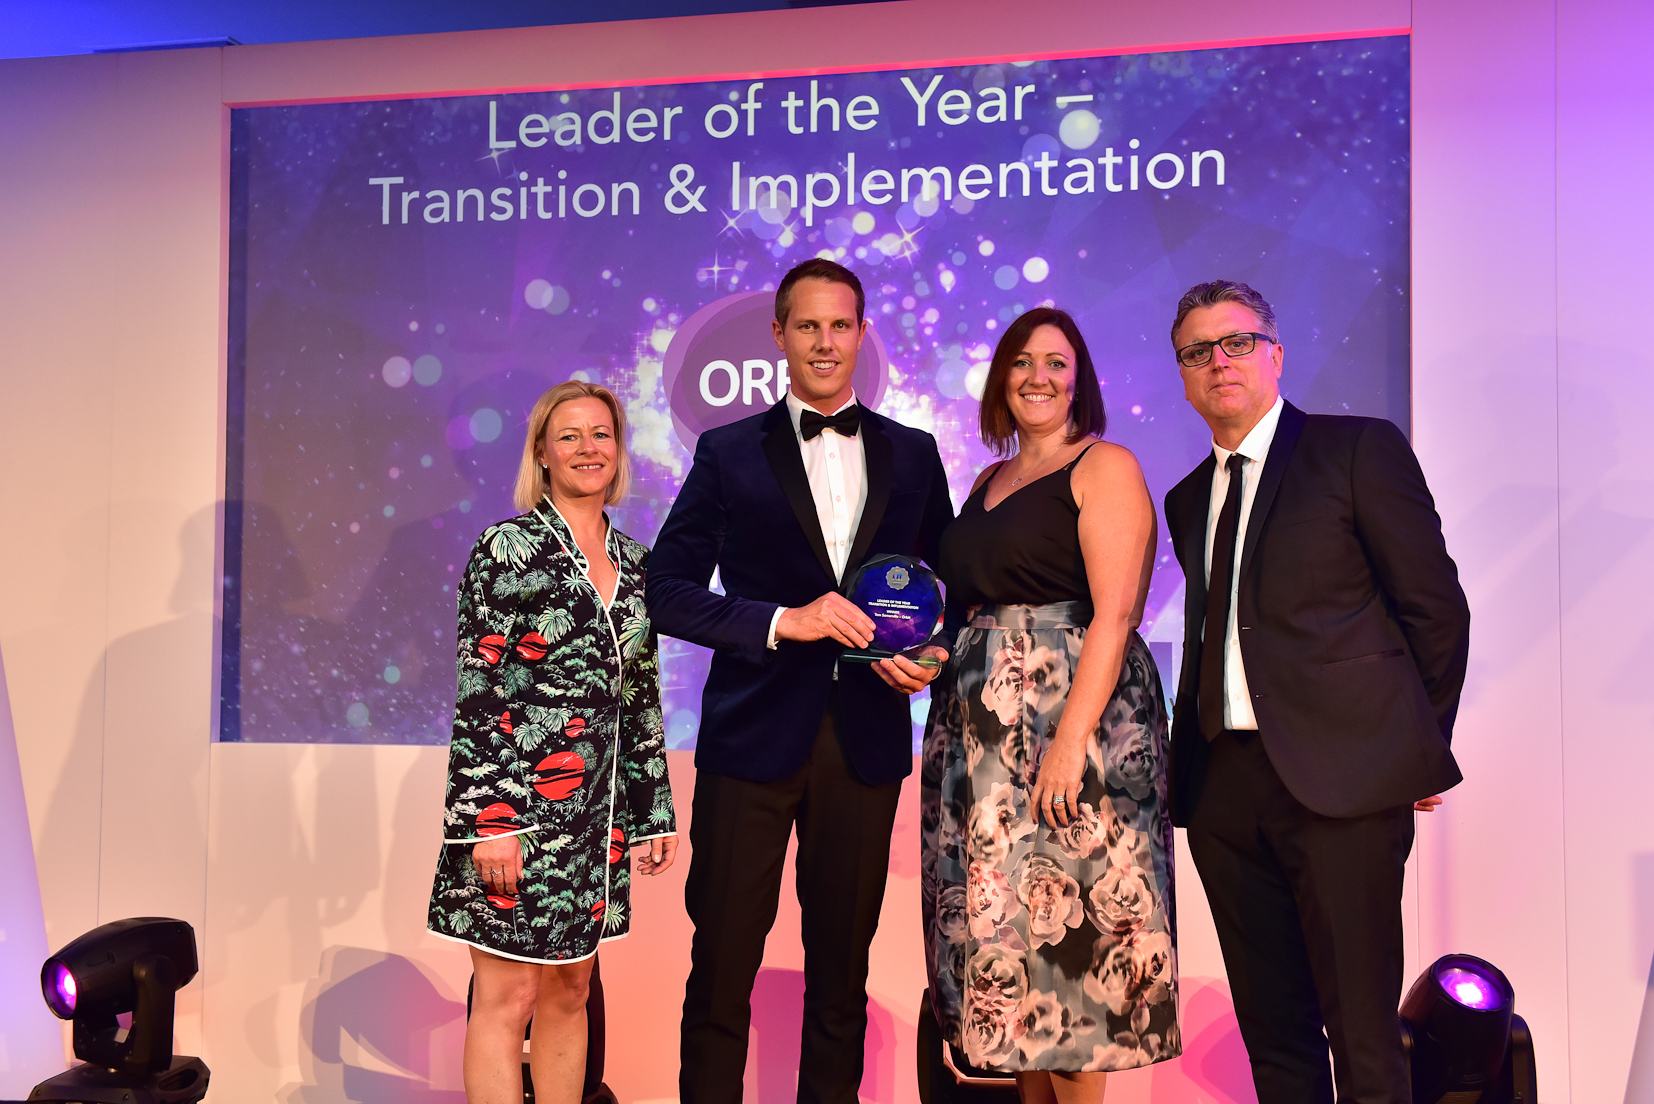 Winners U&TA 2017 - 6 Leader of the Year - Transition & Implementation